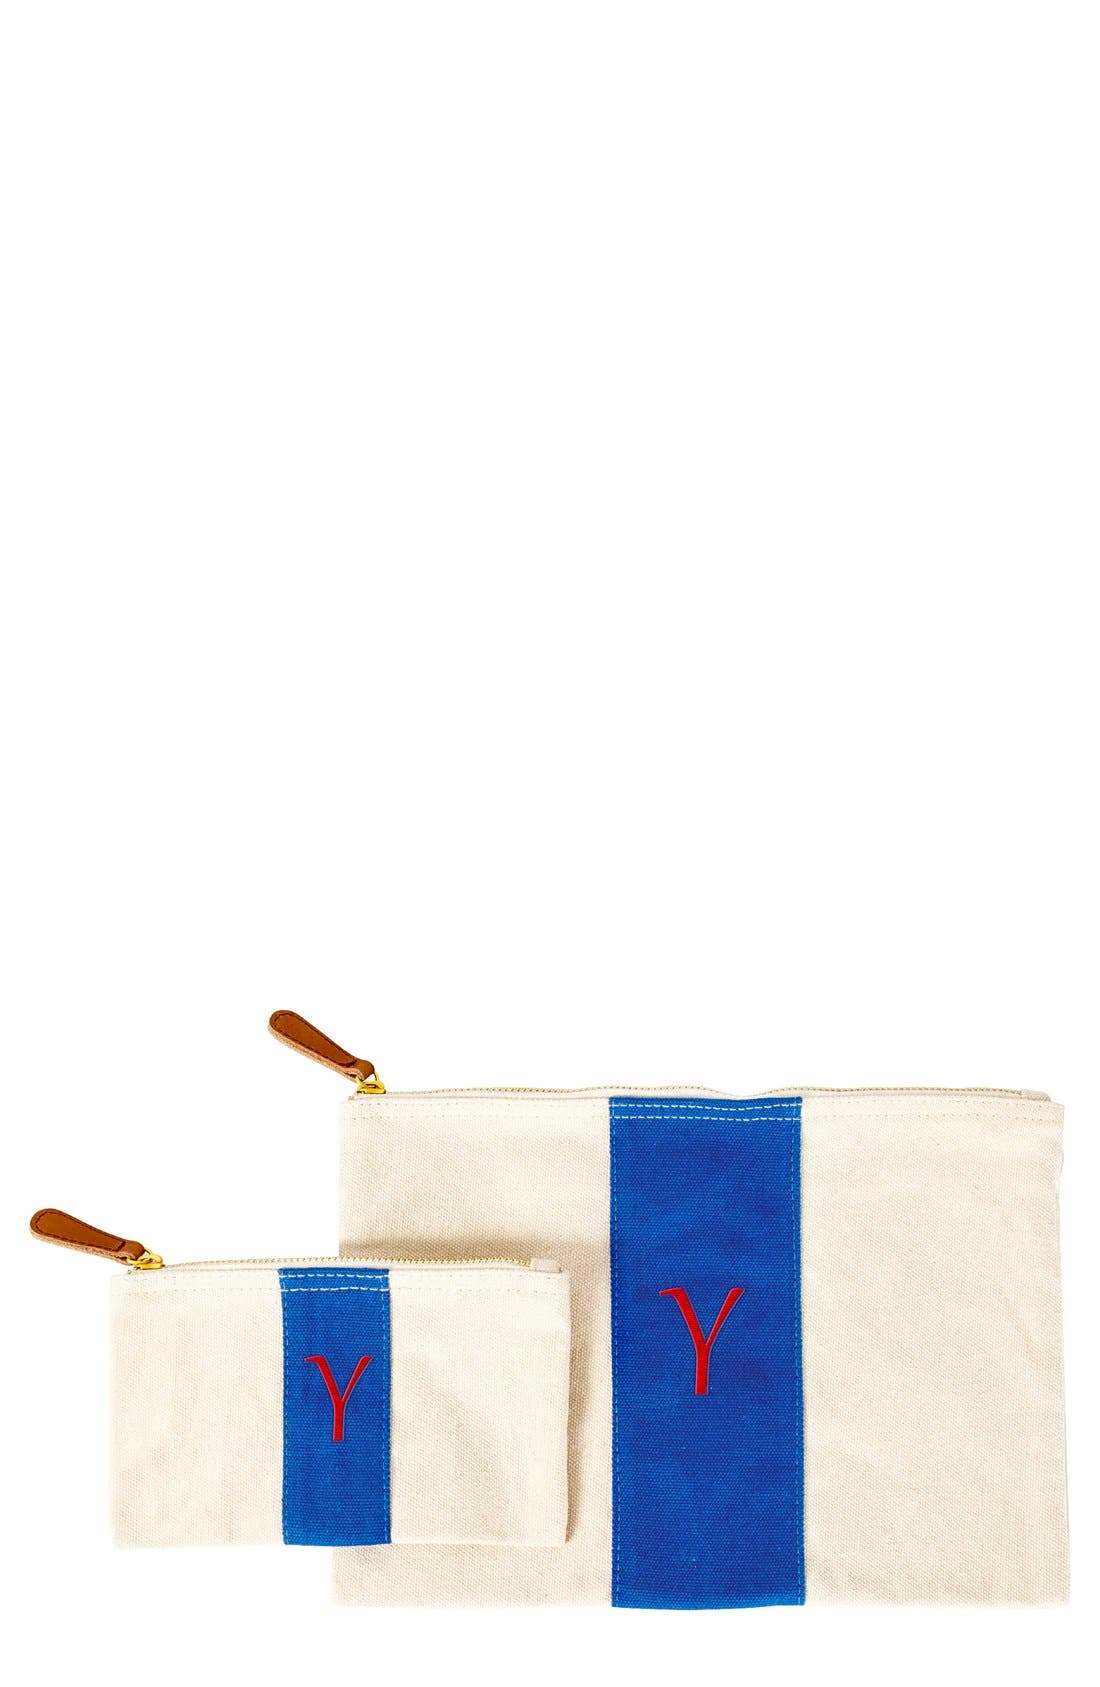 Main Image - Cathy's Concepts Personalized Canvas Clutch